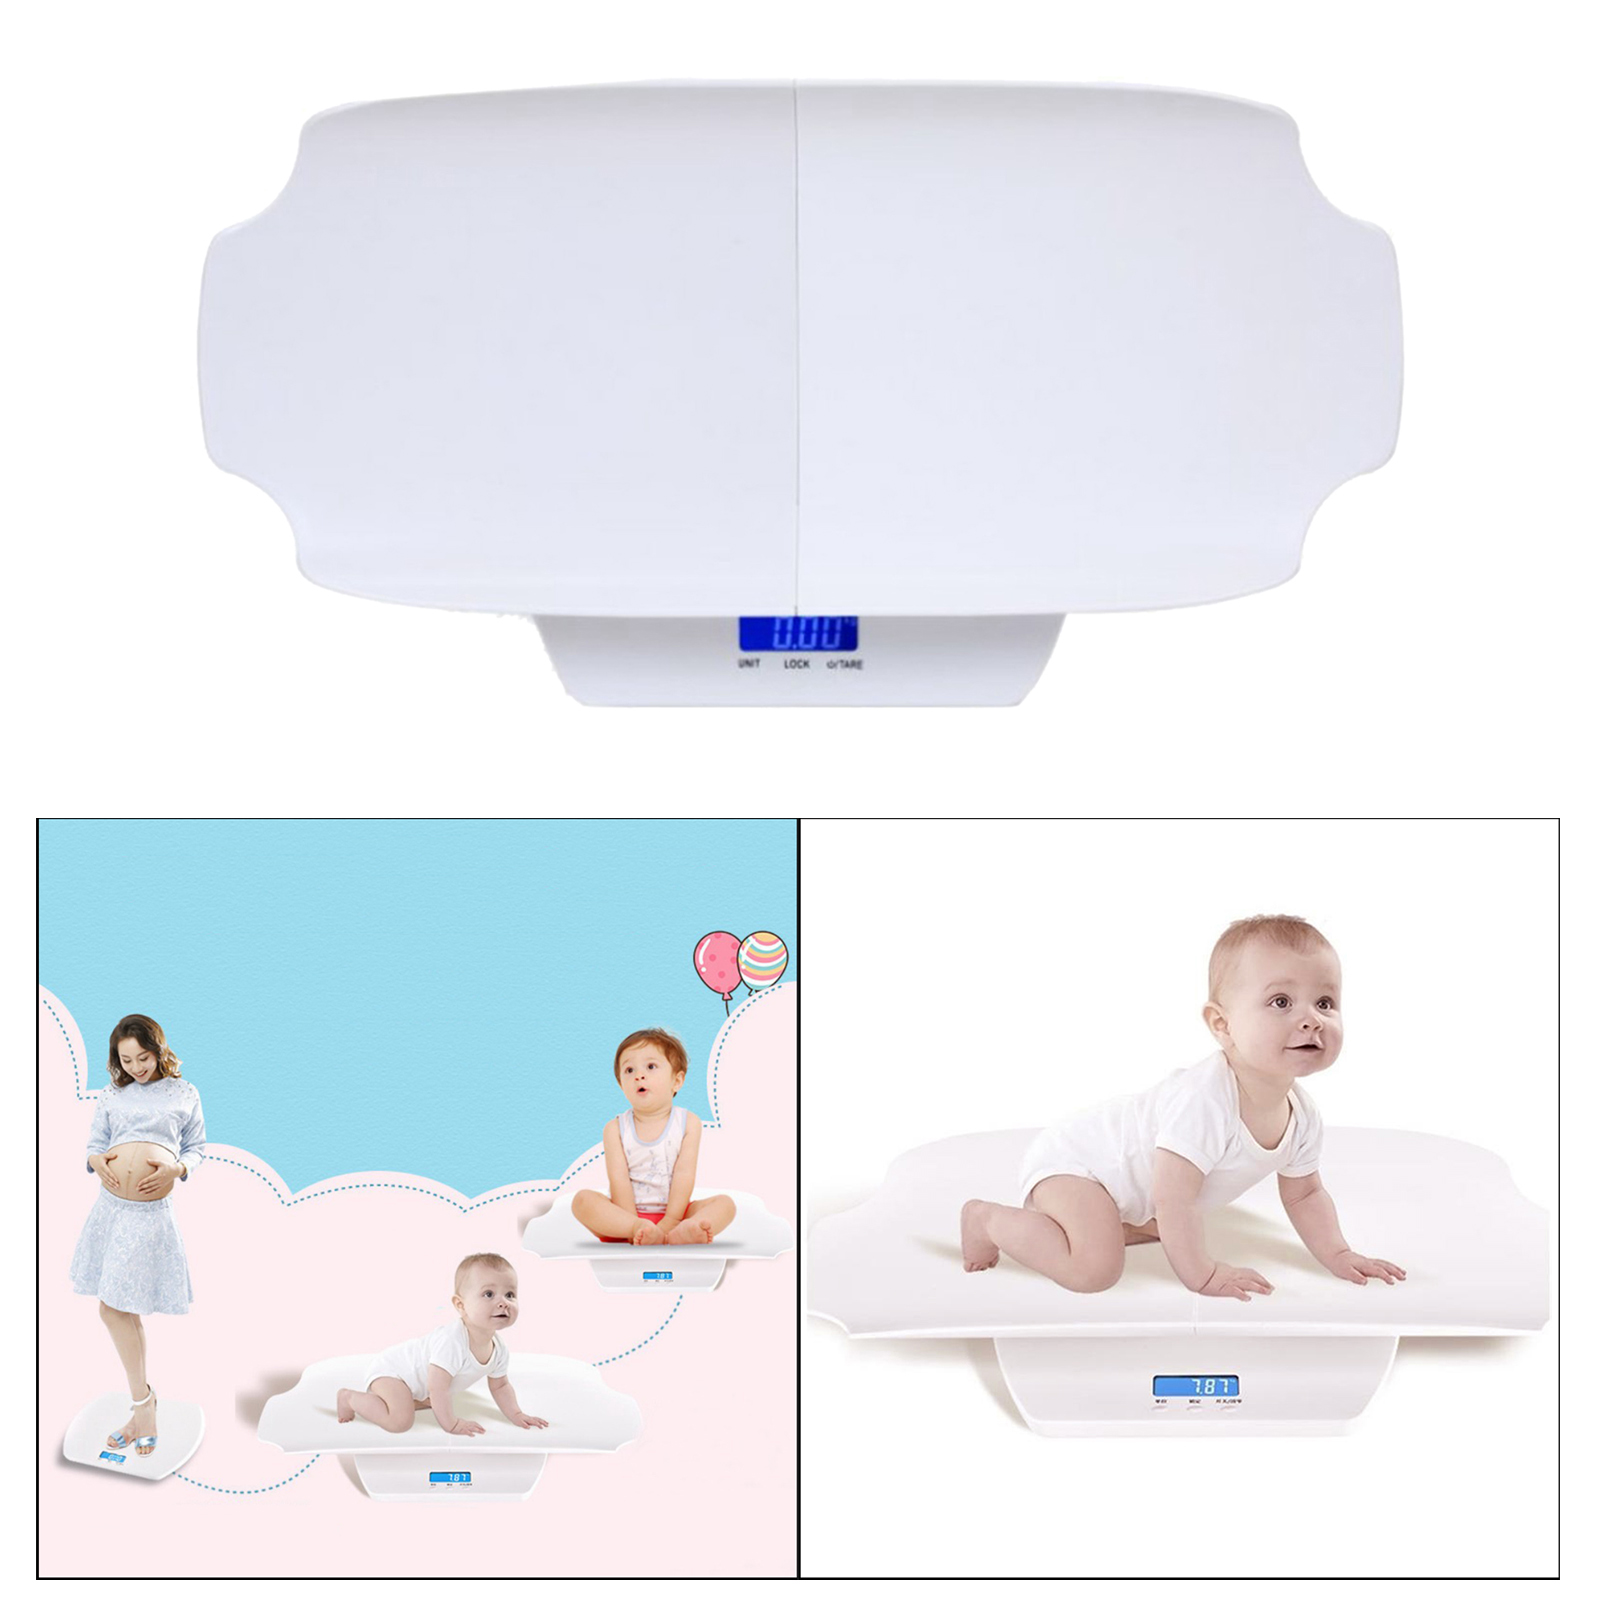 Baby Scale, Pet Scale for Infant, Newborn/Puppy, Cat Animals LCD Display, Highly Accurate, Hold Function